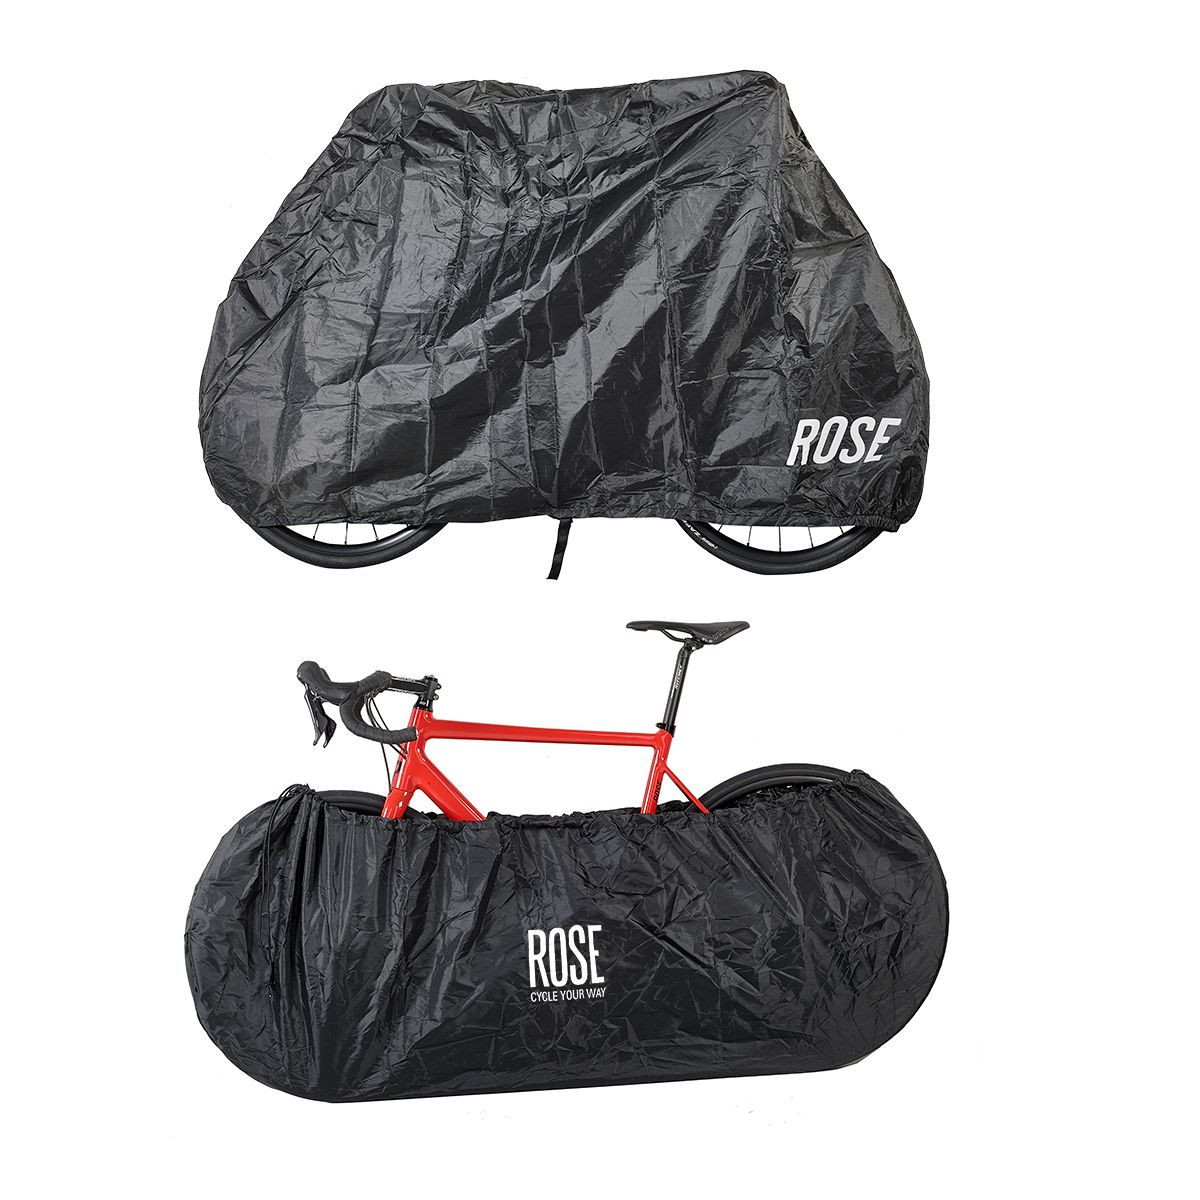 Cycle your way protective bike cover set - all-round -